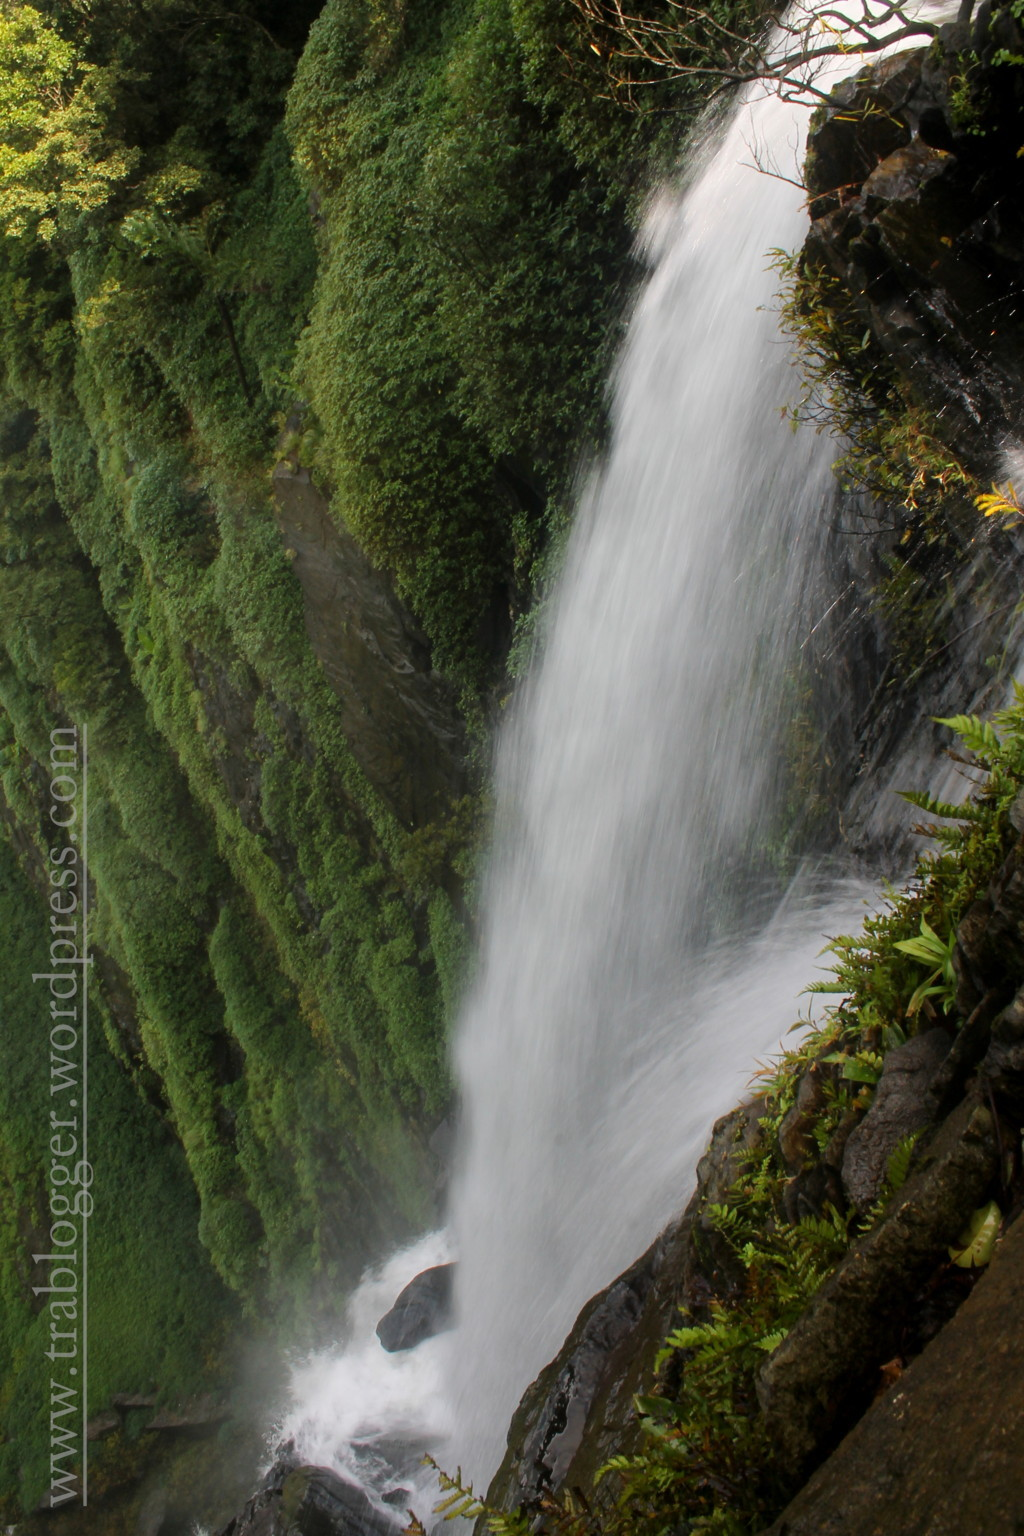 And Some more The Gorgeous Onake Abbi falls